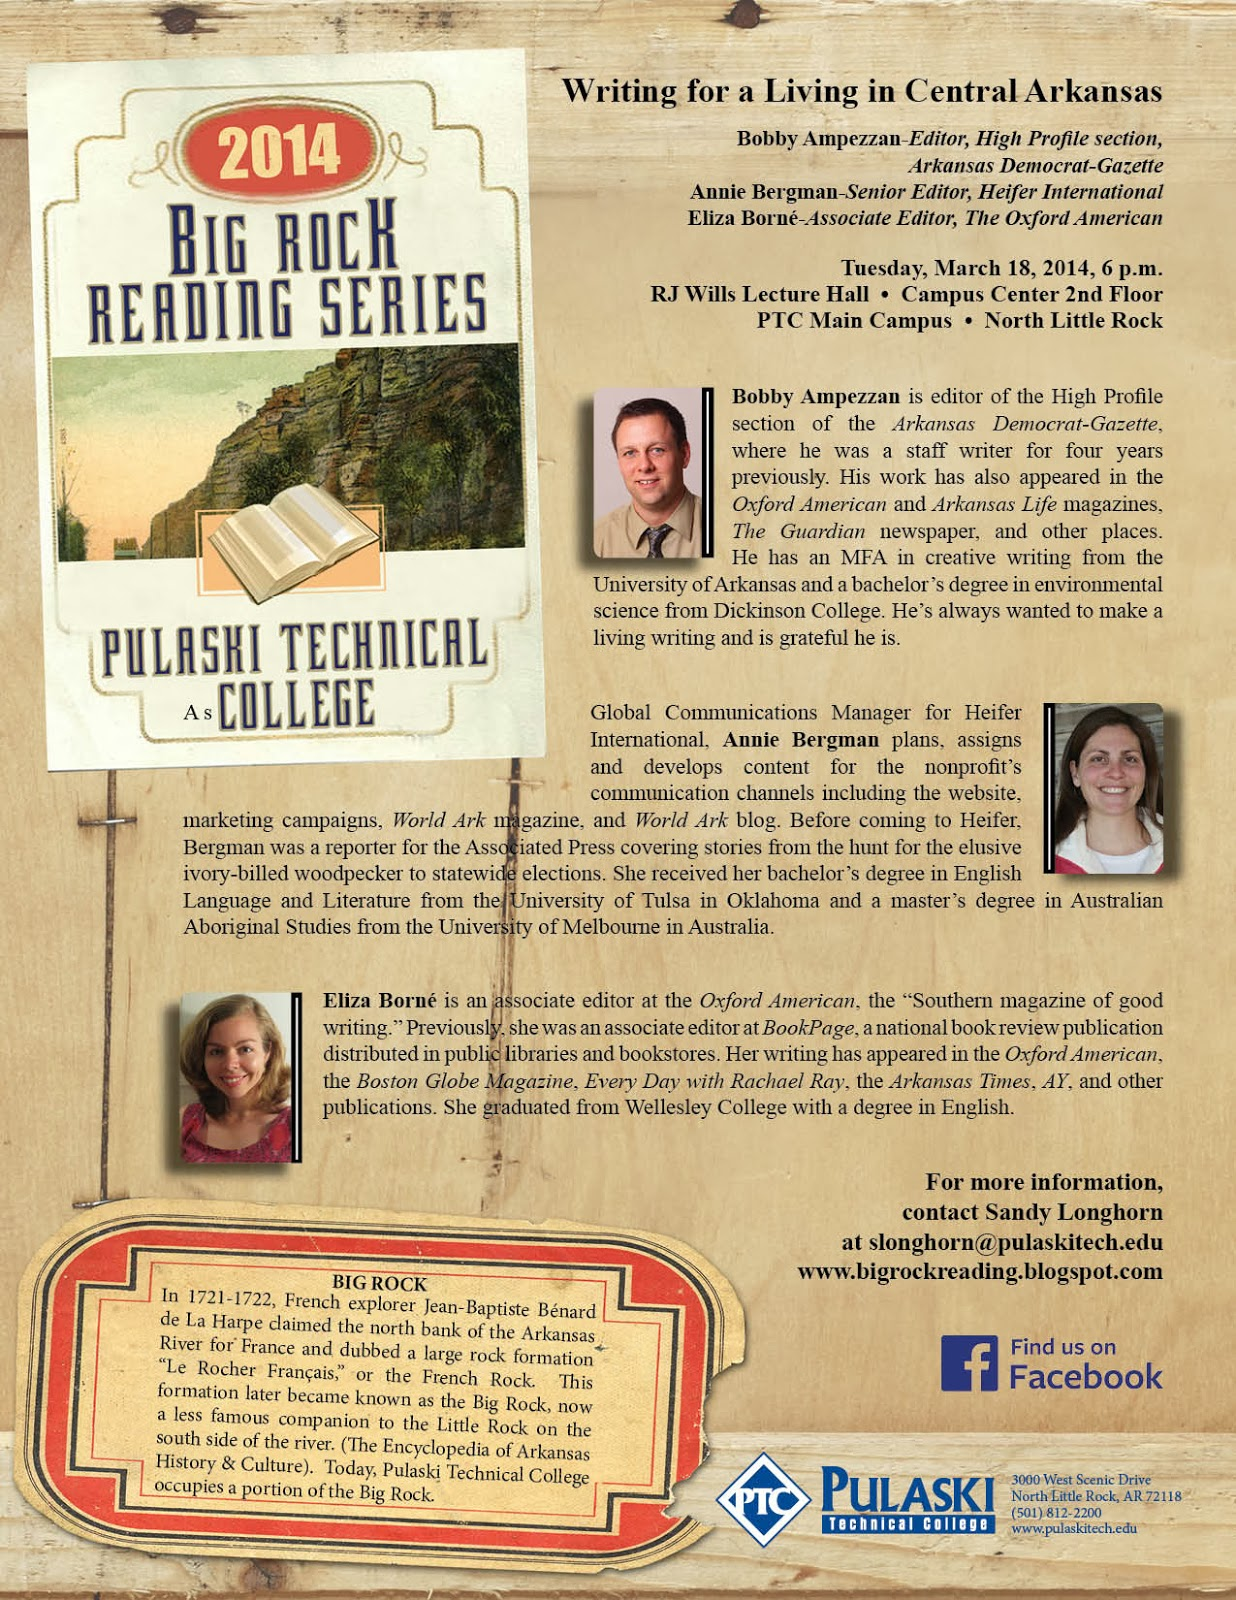 big rock reading series tuesday 18 2014 6 00 p m rj wills lecture hall campus center pulaski tech main campus